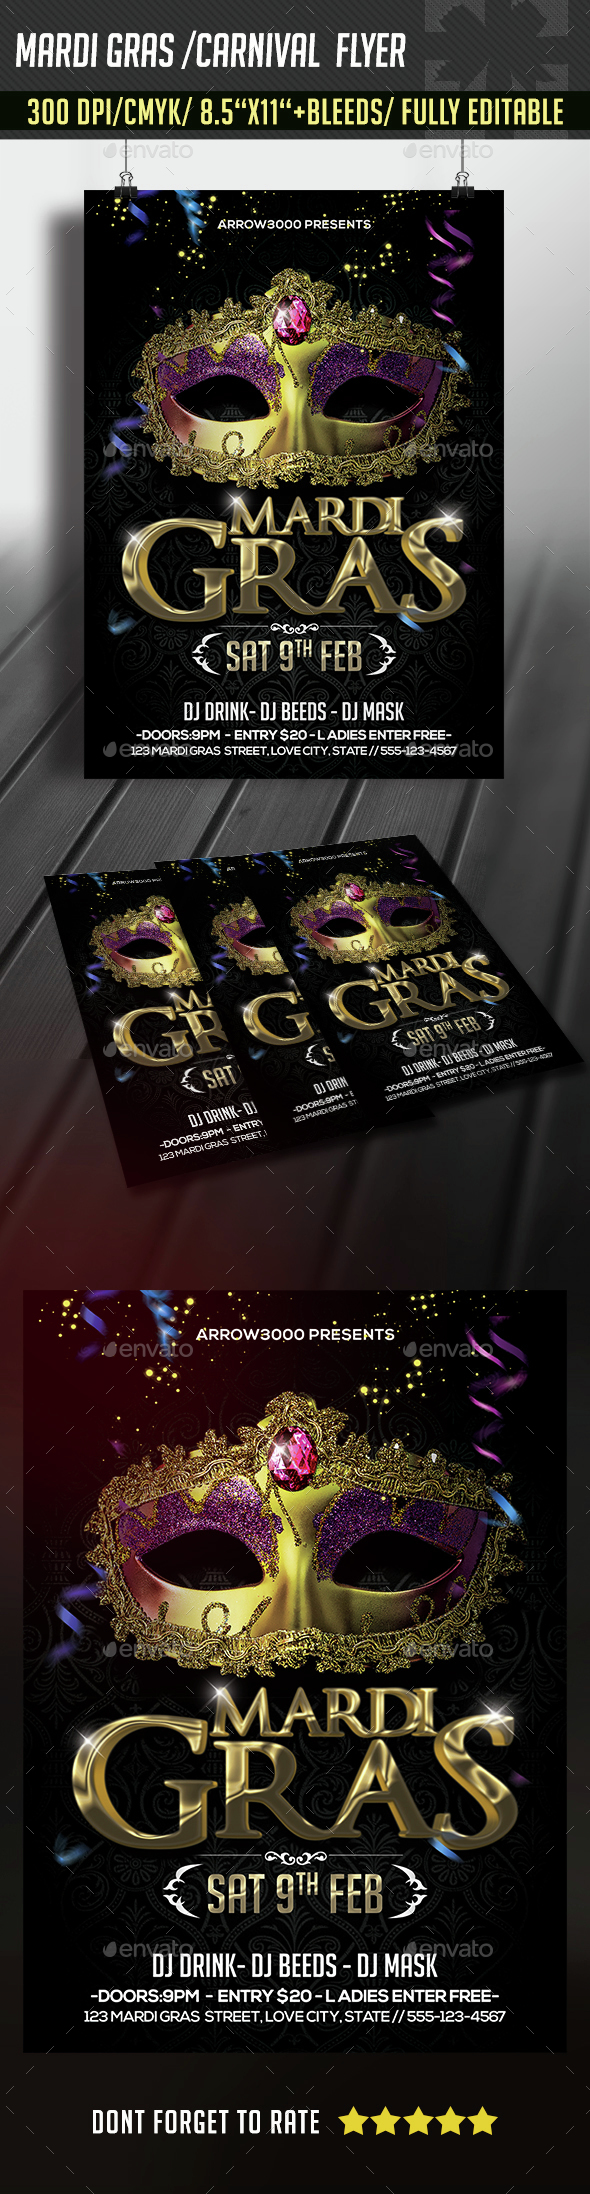 Mardi Gras/ Carnival Party Flyer - Clubs & Parties Events